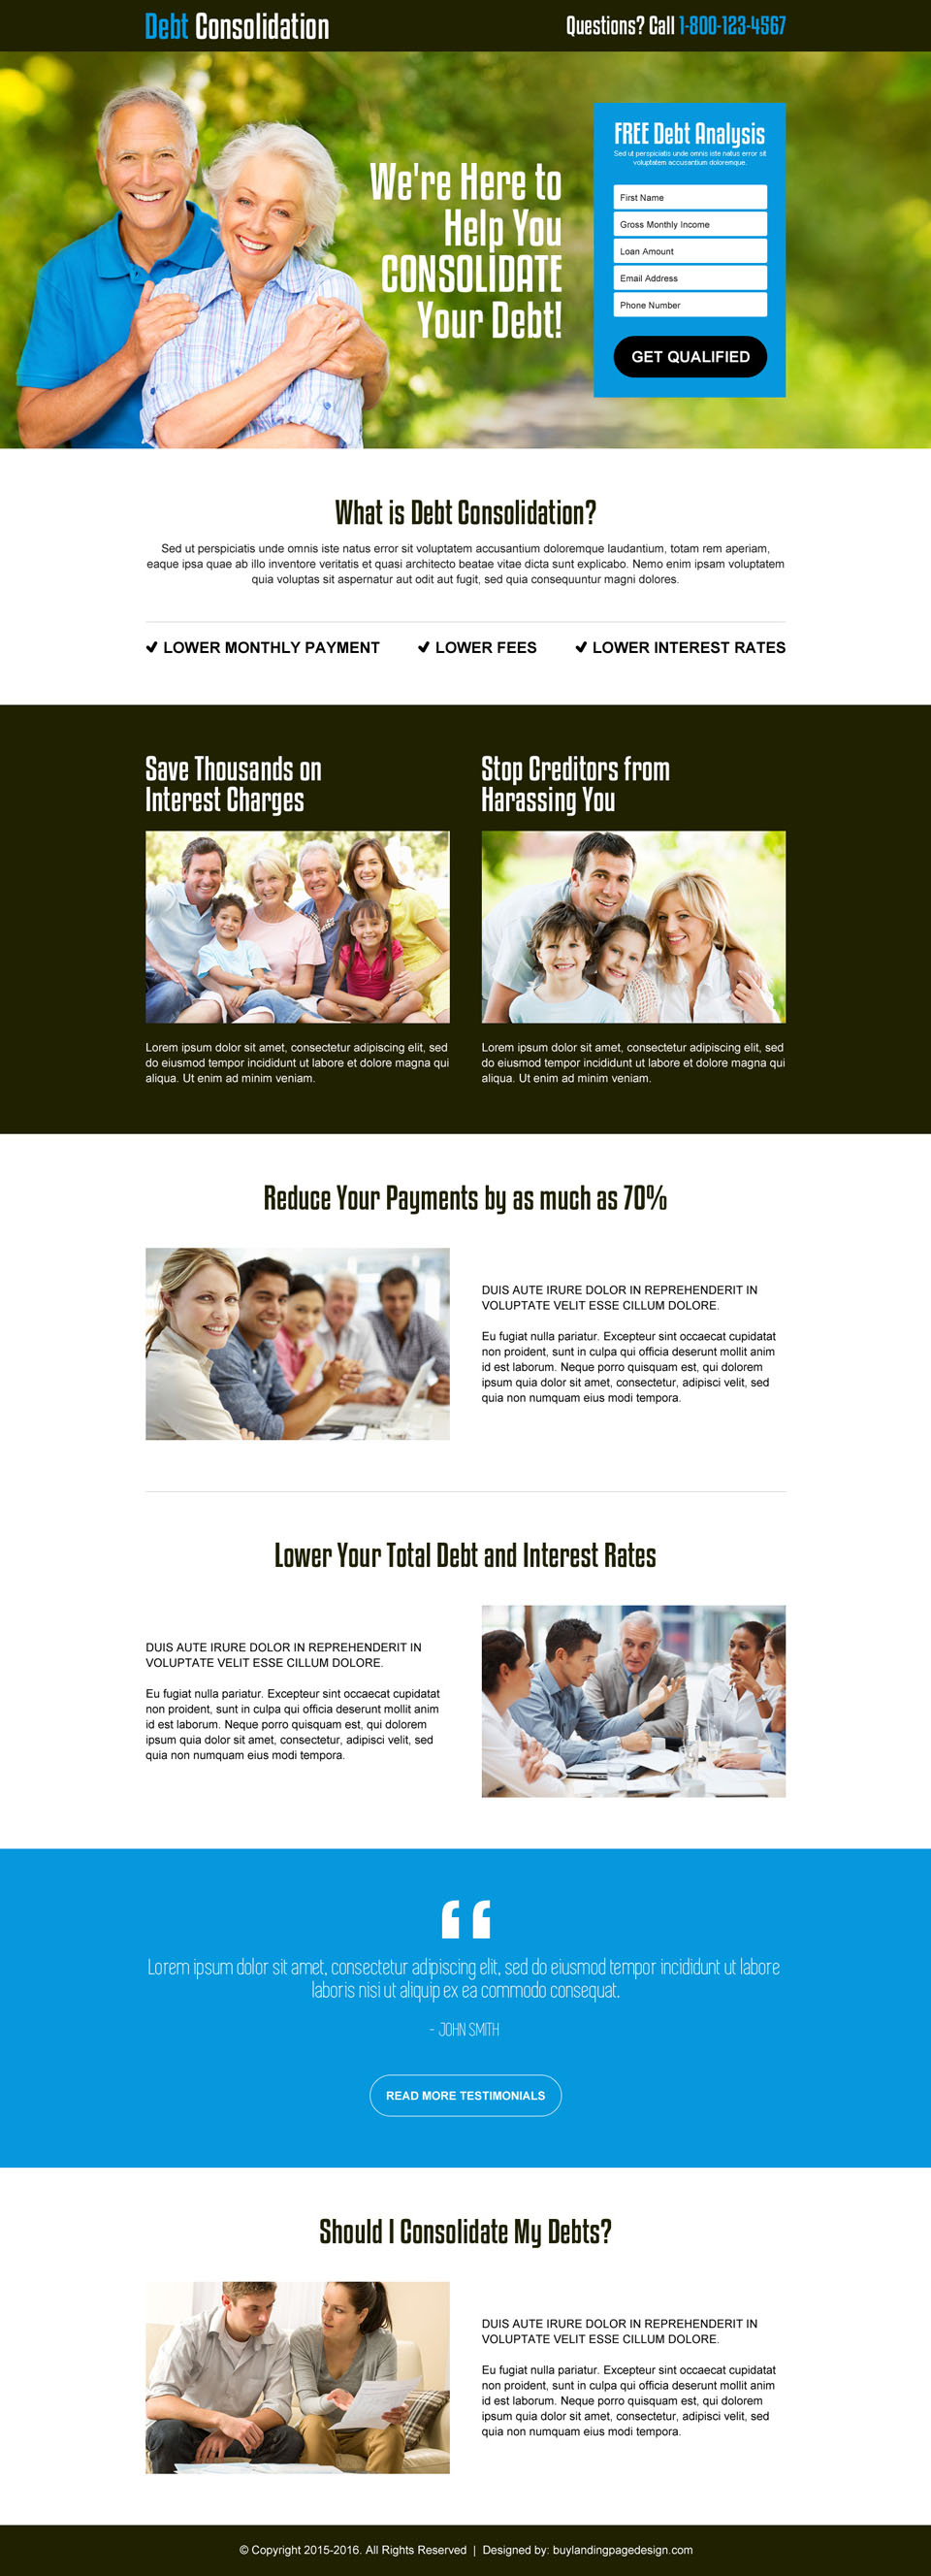 free-debt-analysis-lead-generation-converting-landing-page-design-041